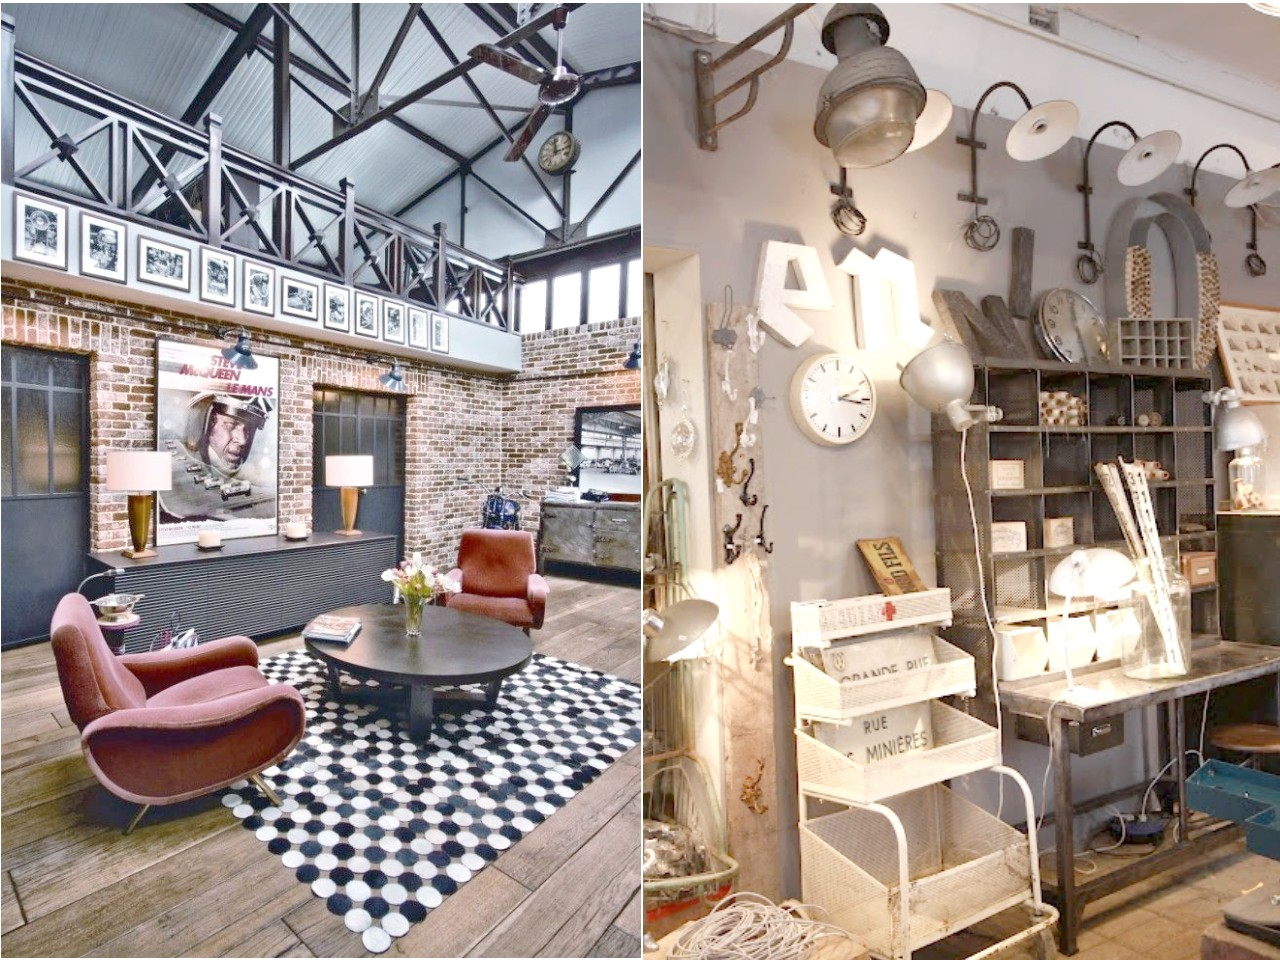 6 claves para una decoraci n vintage industrial que te for Decoracion retro industrial